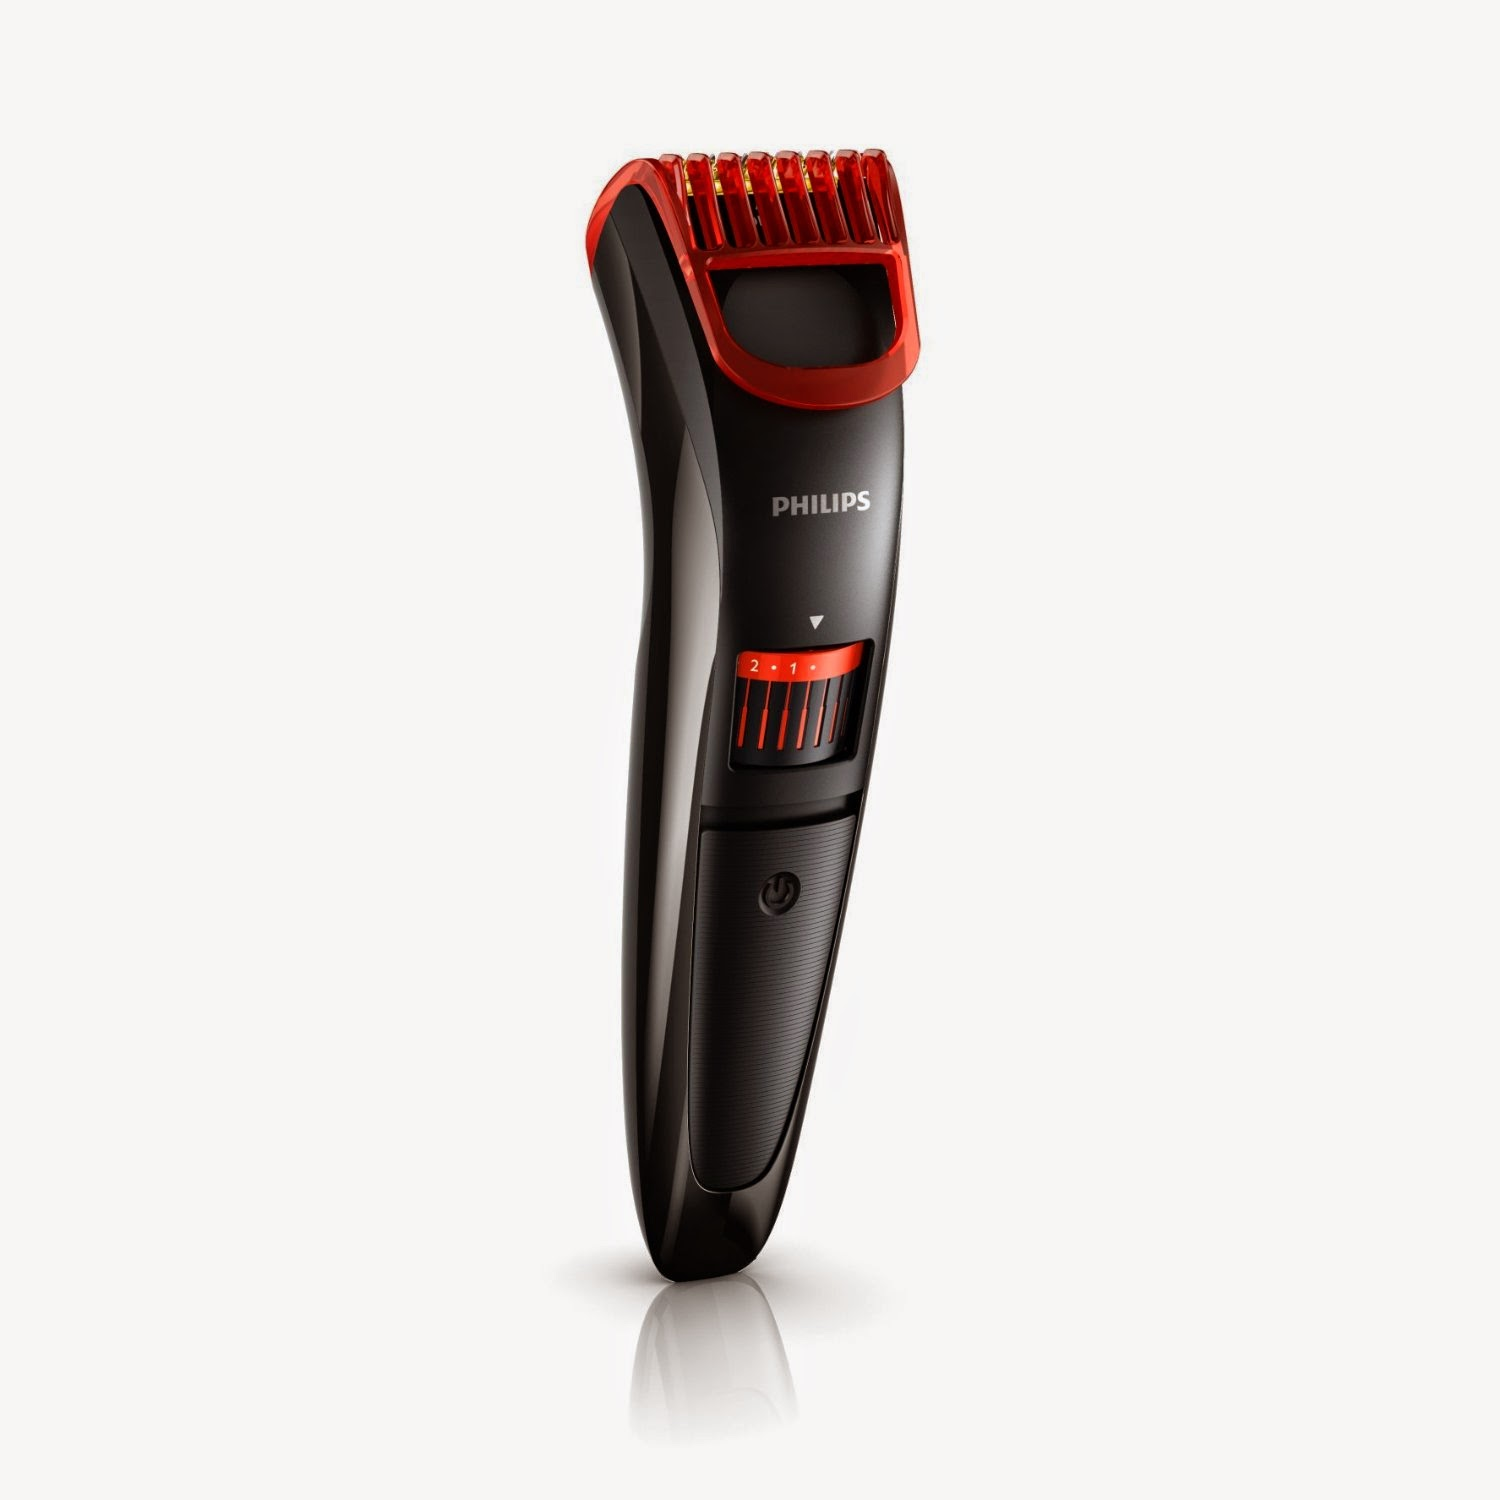 Buy Philips Skin Advance Trimmer At Upto 27% OFF at Rs 1399 Via Snapdeal